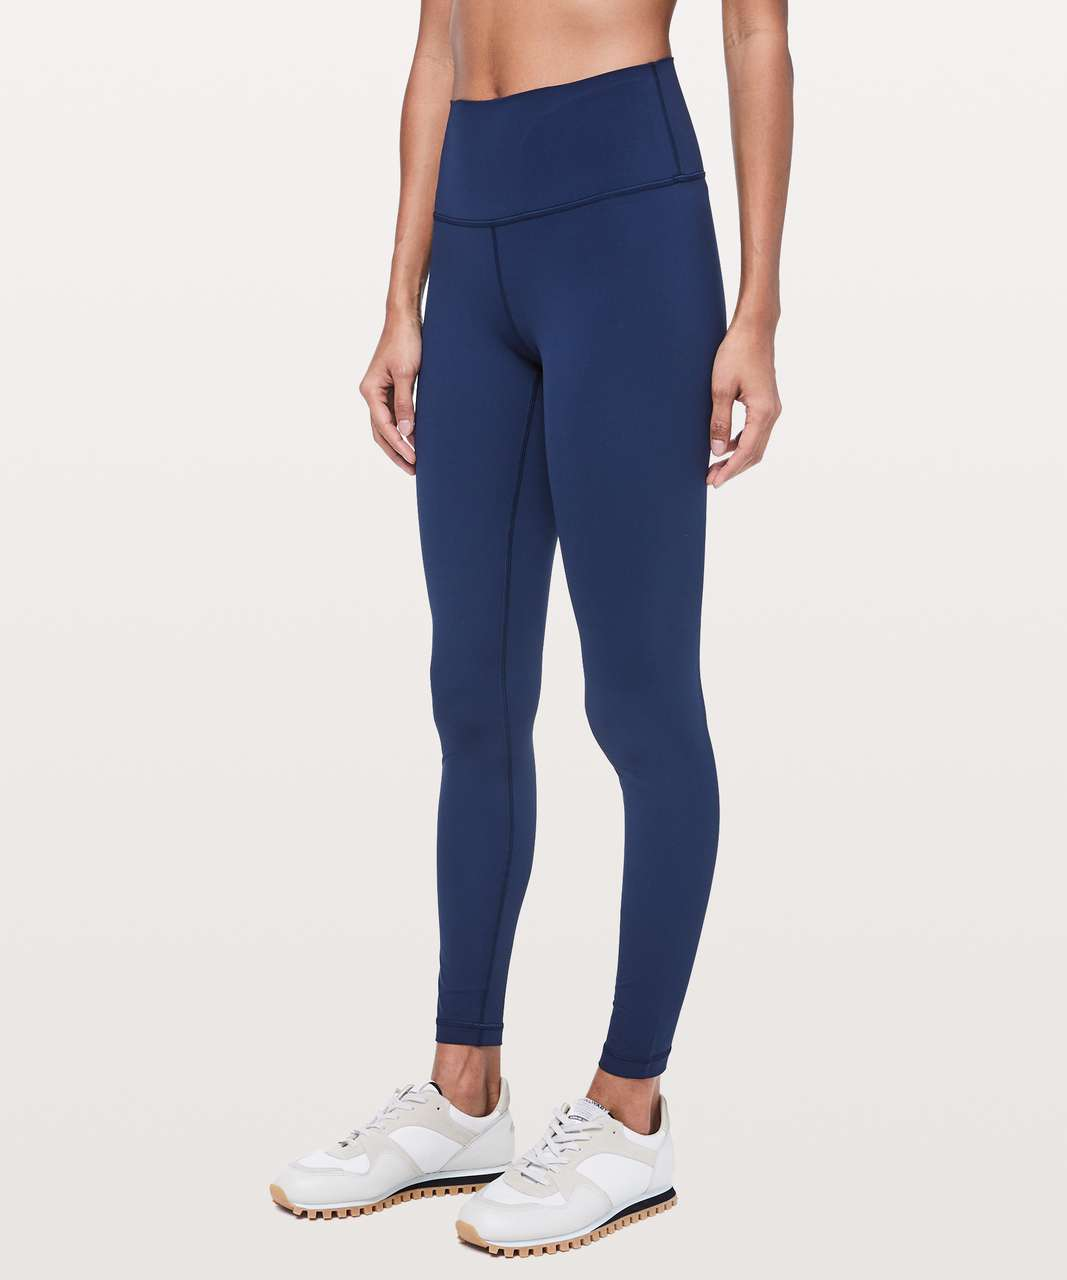 "Lululemon Wunder Under High-Rise Tight *Nulux 28"" - True Navy"